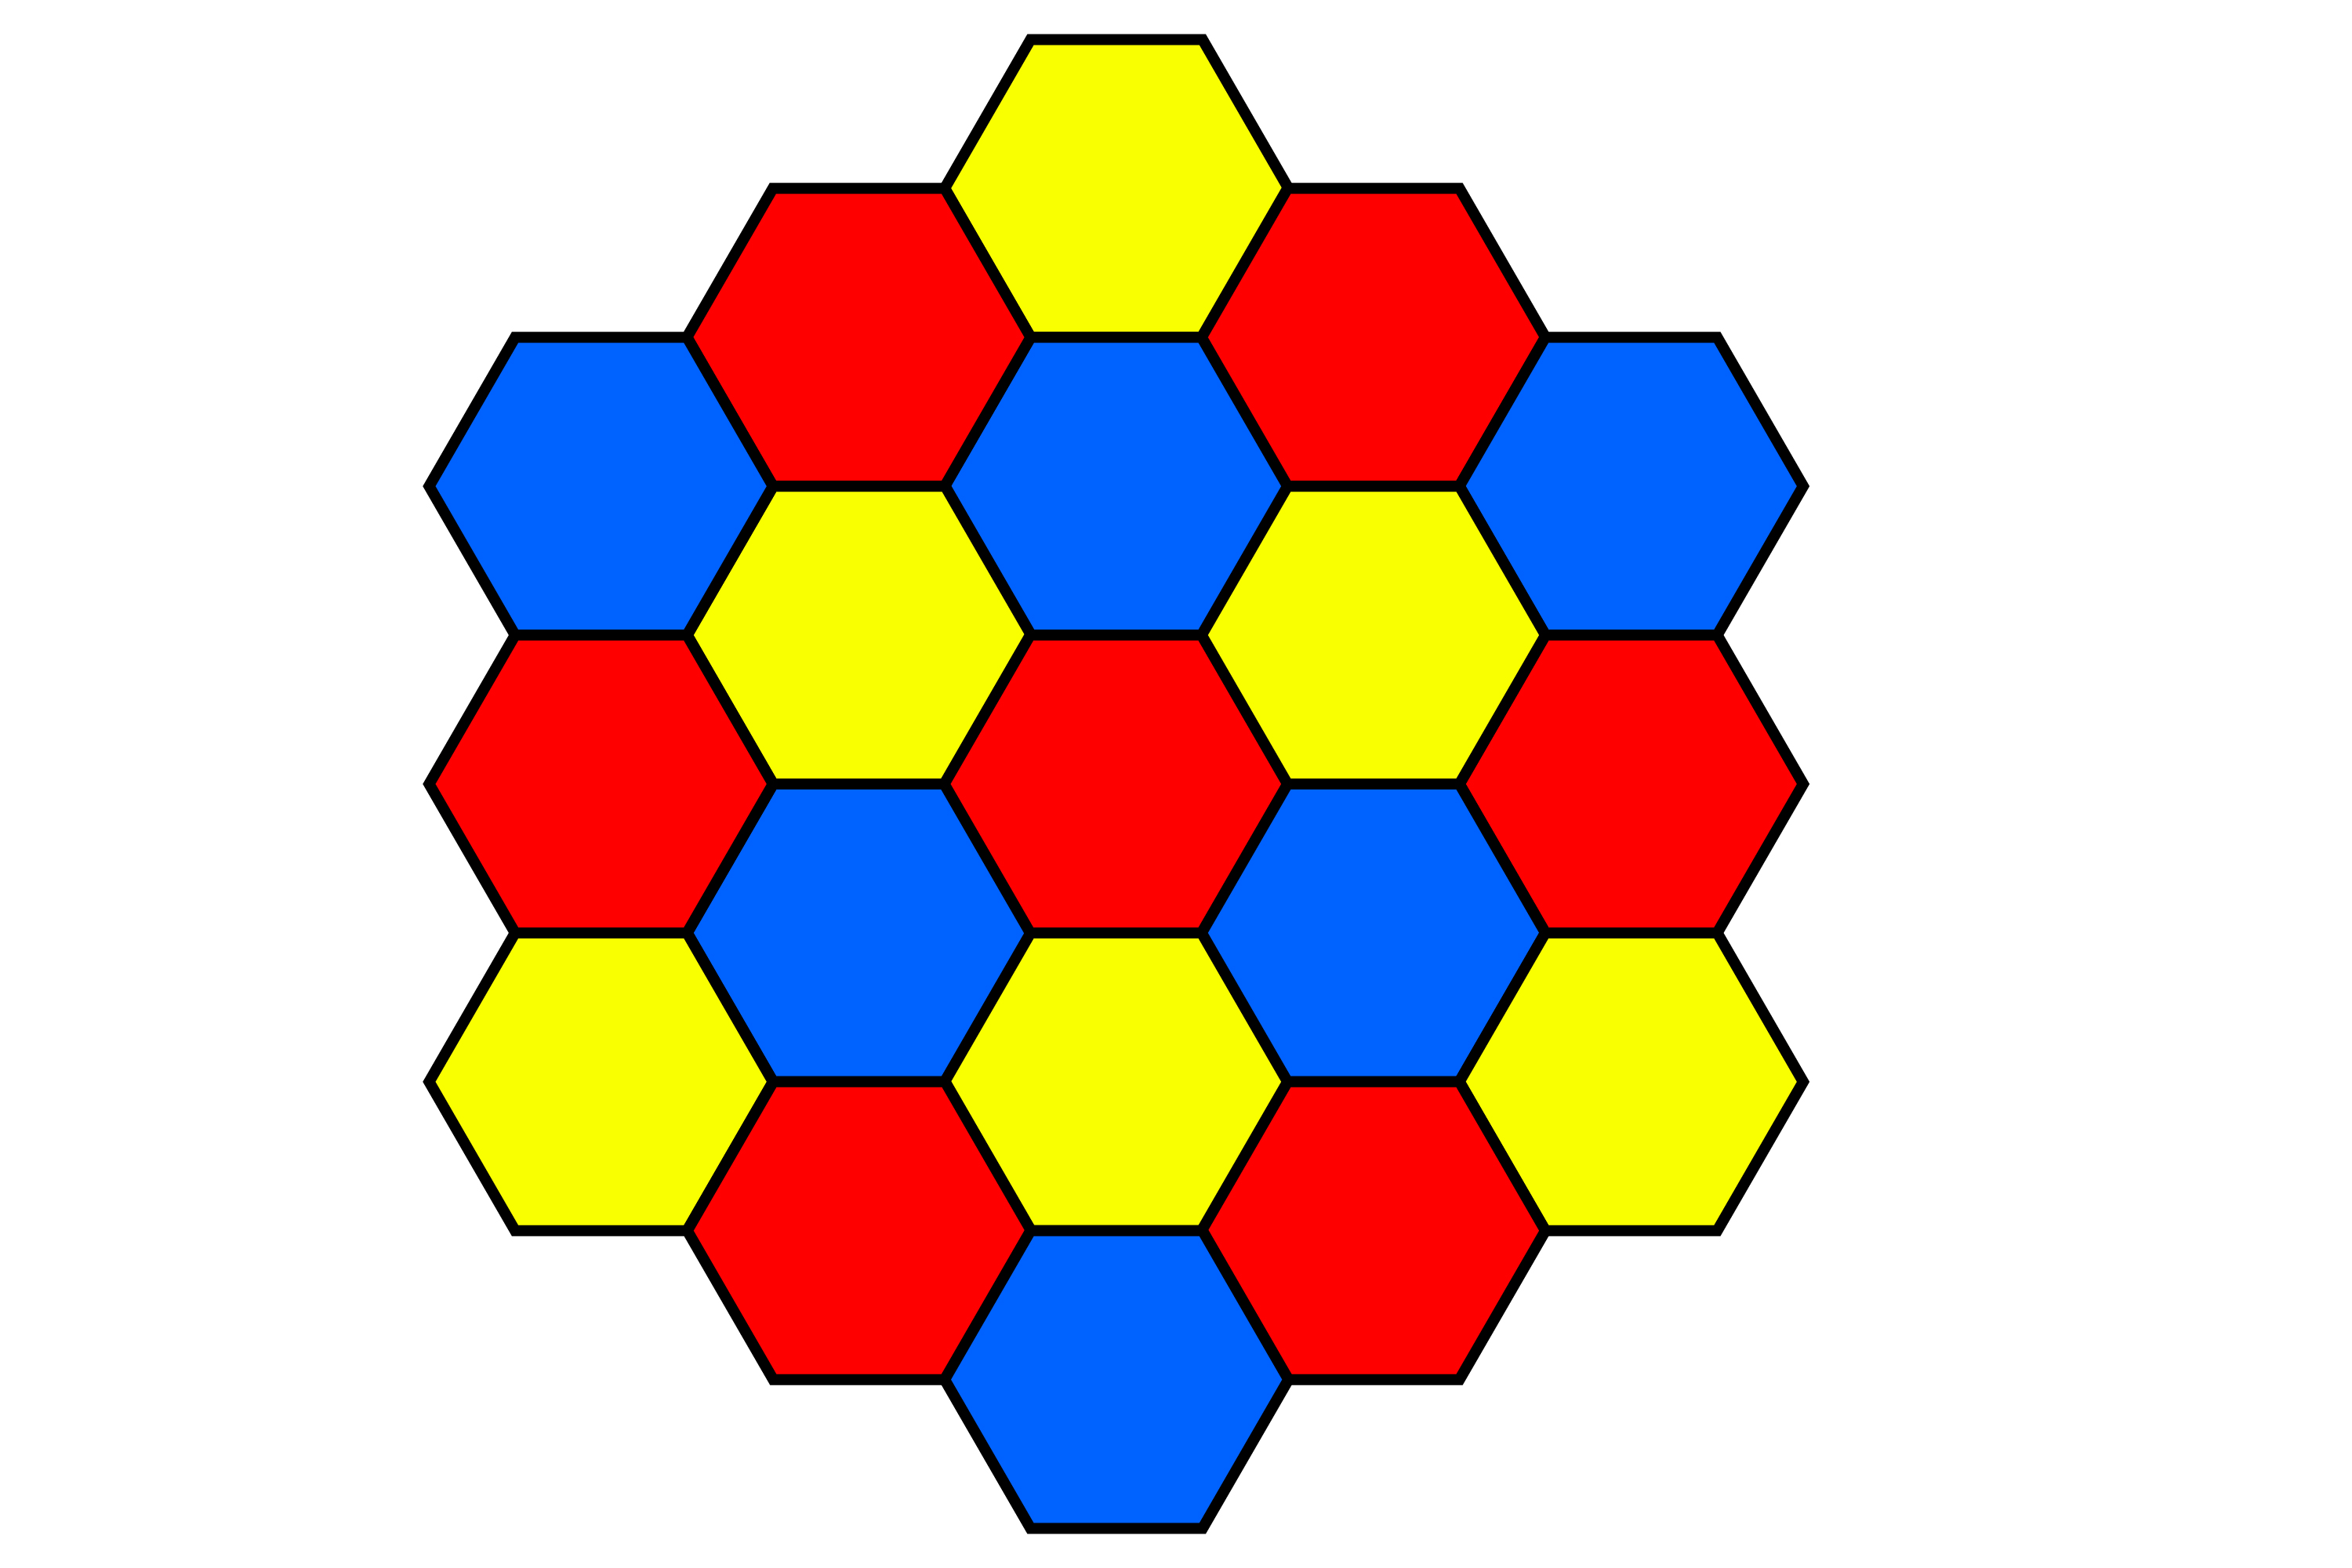 Hexagons make tessellations